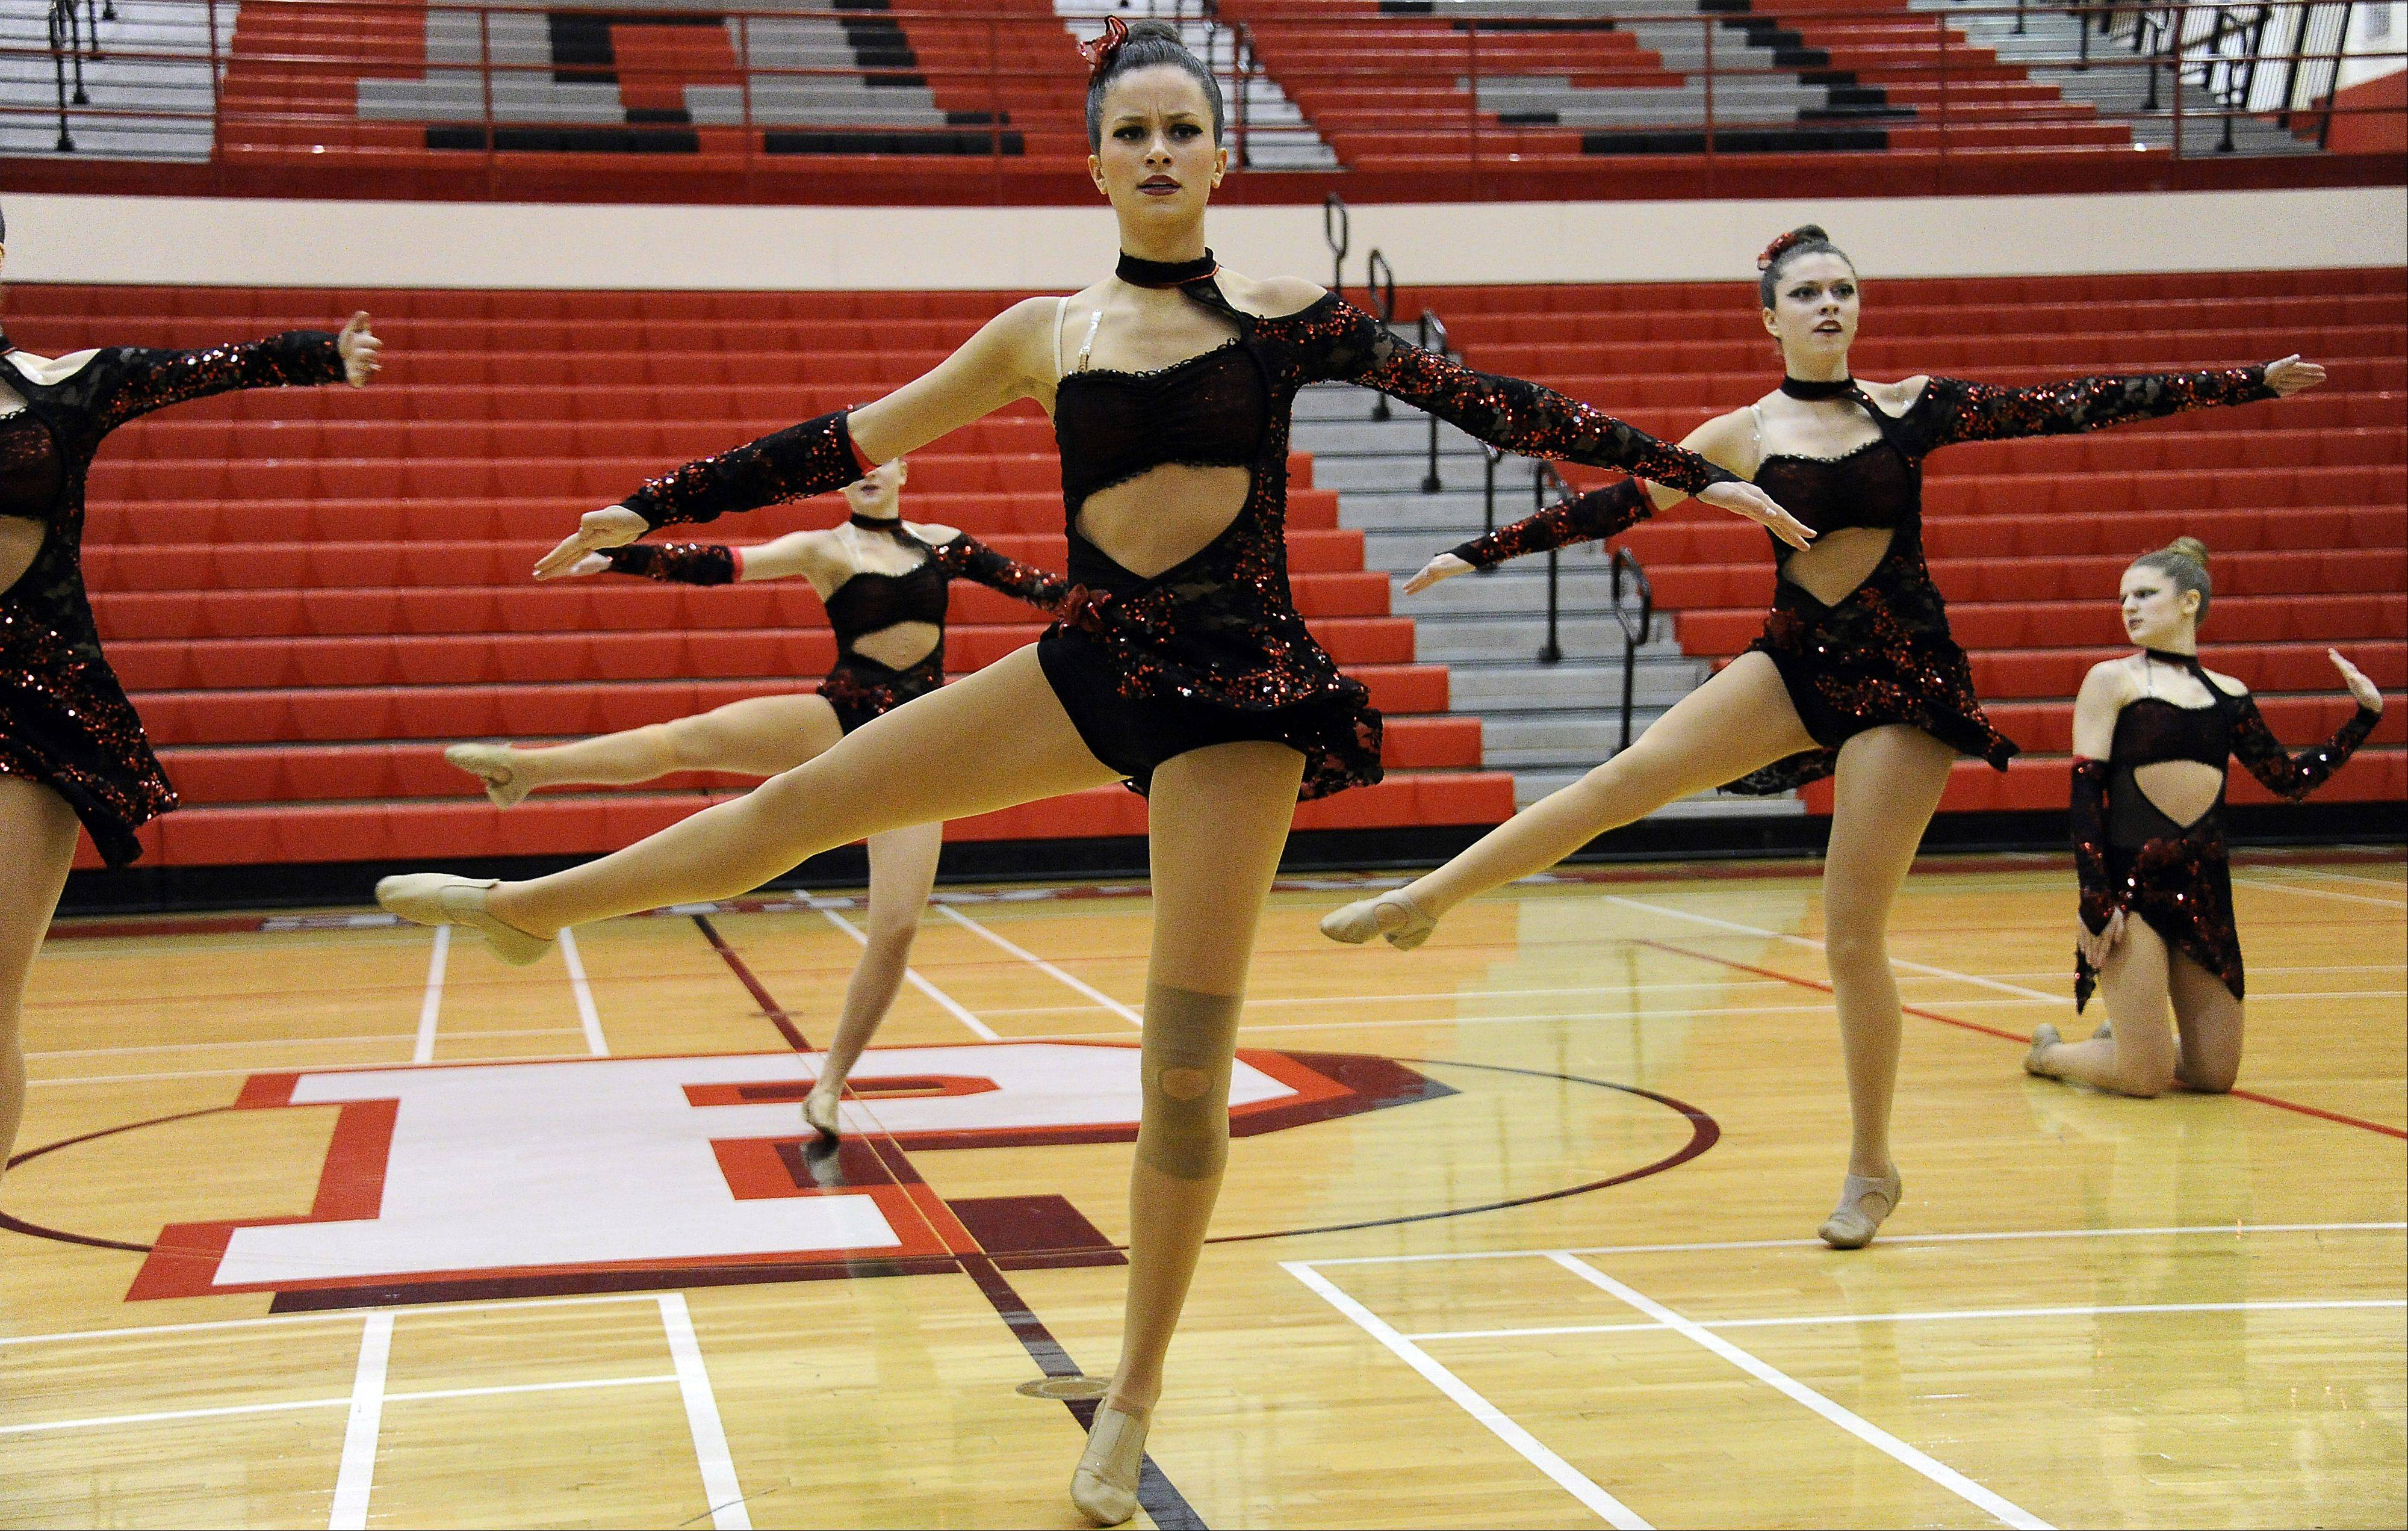 Dancing in the (2A) division are members of St. Charles North High School dance squad with Monique Perdue (center) leading the way in the 1st annual Sectional Competition at Palatine High School on Saturday.